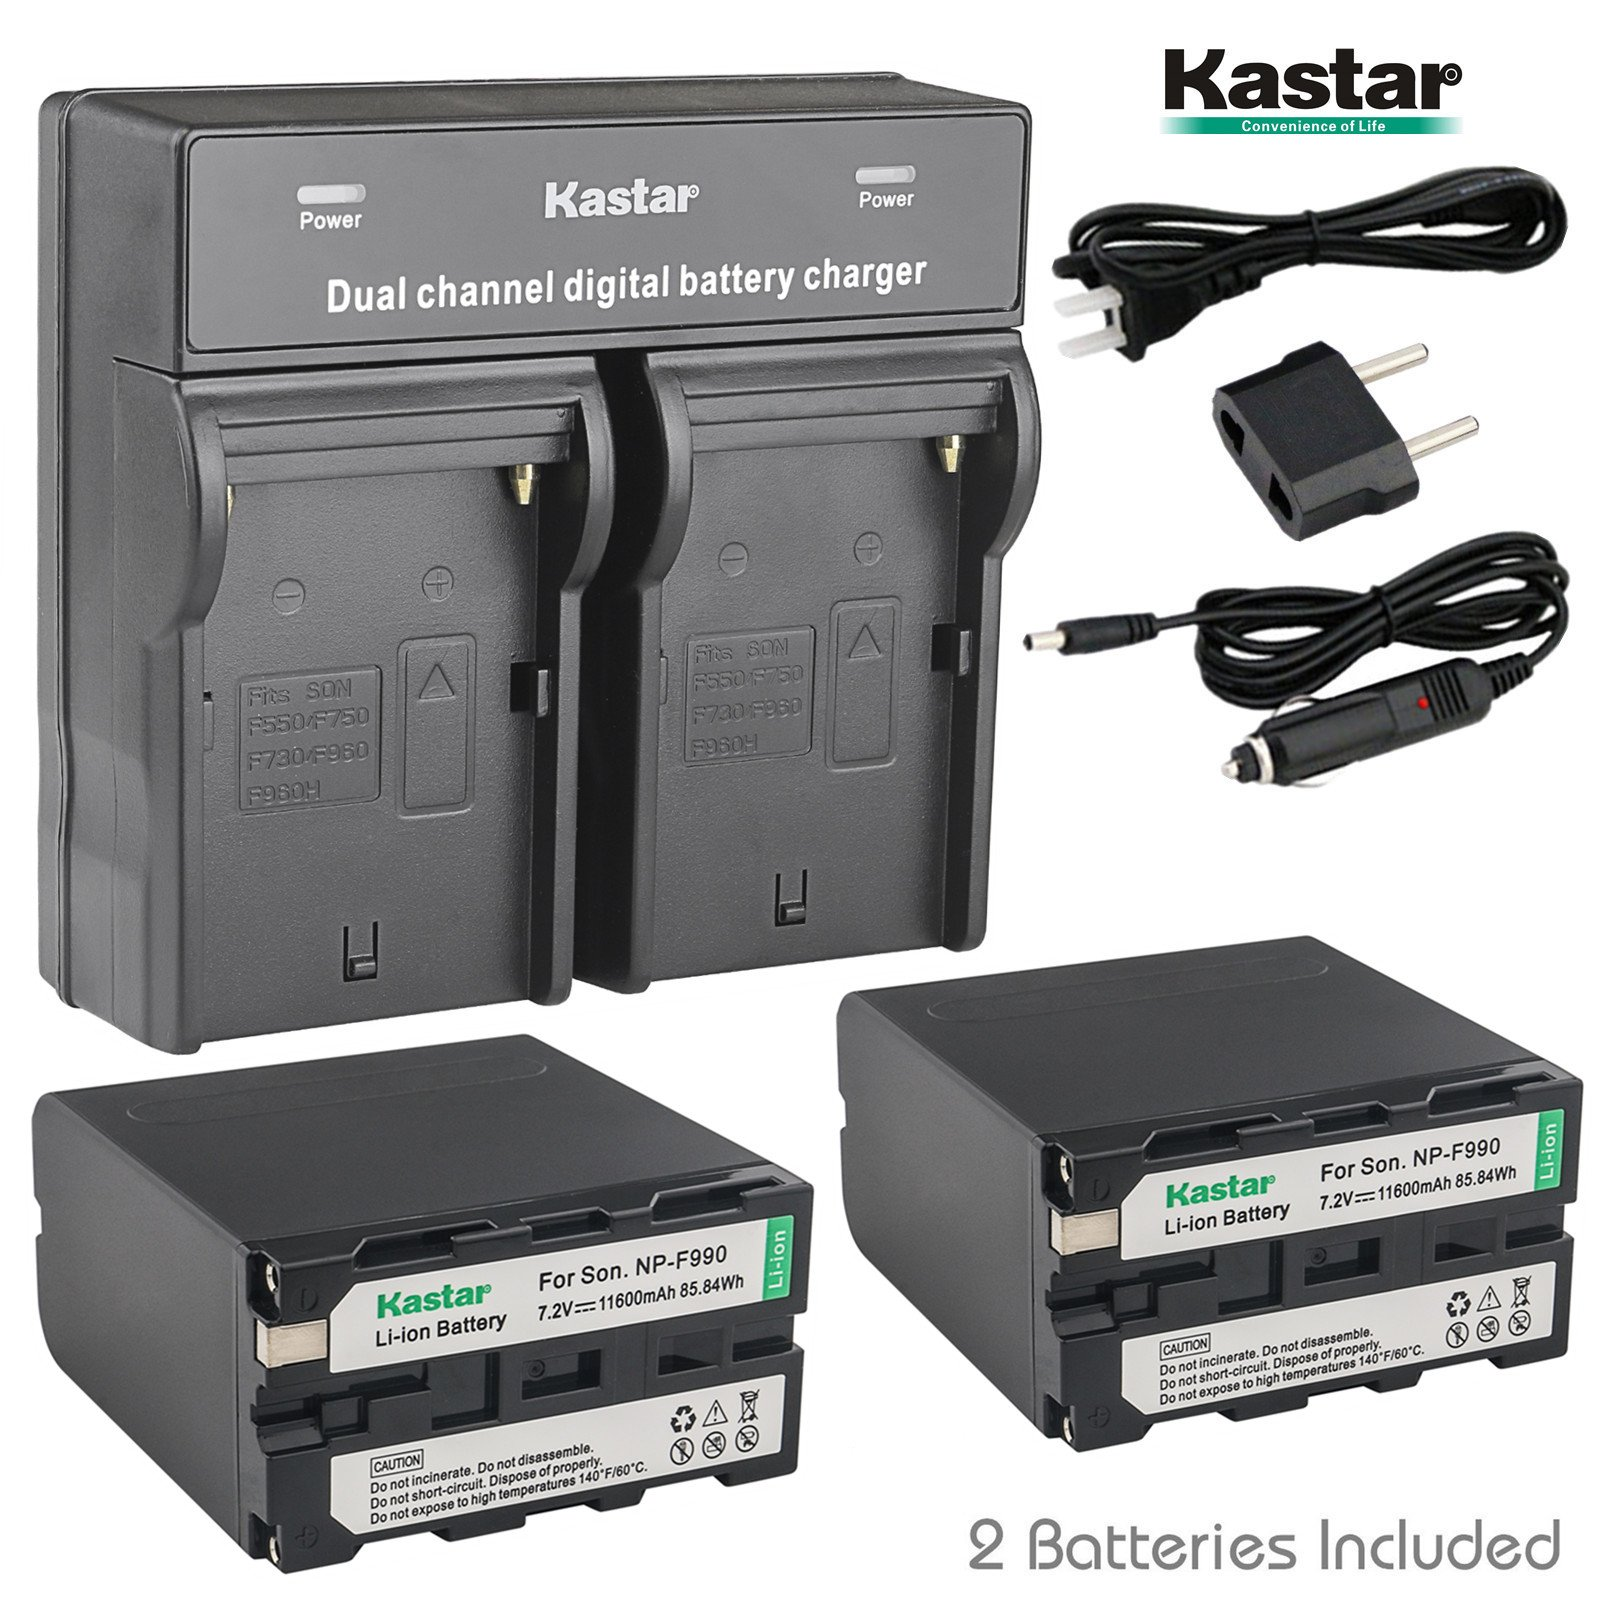 Kastar USB Dual Charger & NP-F990 Battery X2 7.2V 11600mAh for Sony NP-F975 NP-F970 NP-F960 NP-F950 NP-F930 NP-F770 NP-F750 NP-F730 NP-F570 NP-F550 NP-F530 NP-F330, Sony Camcorder and LED Video Light by Kastar